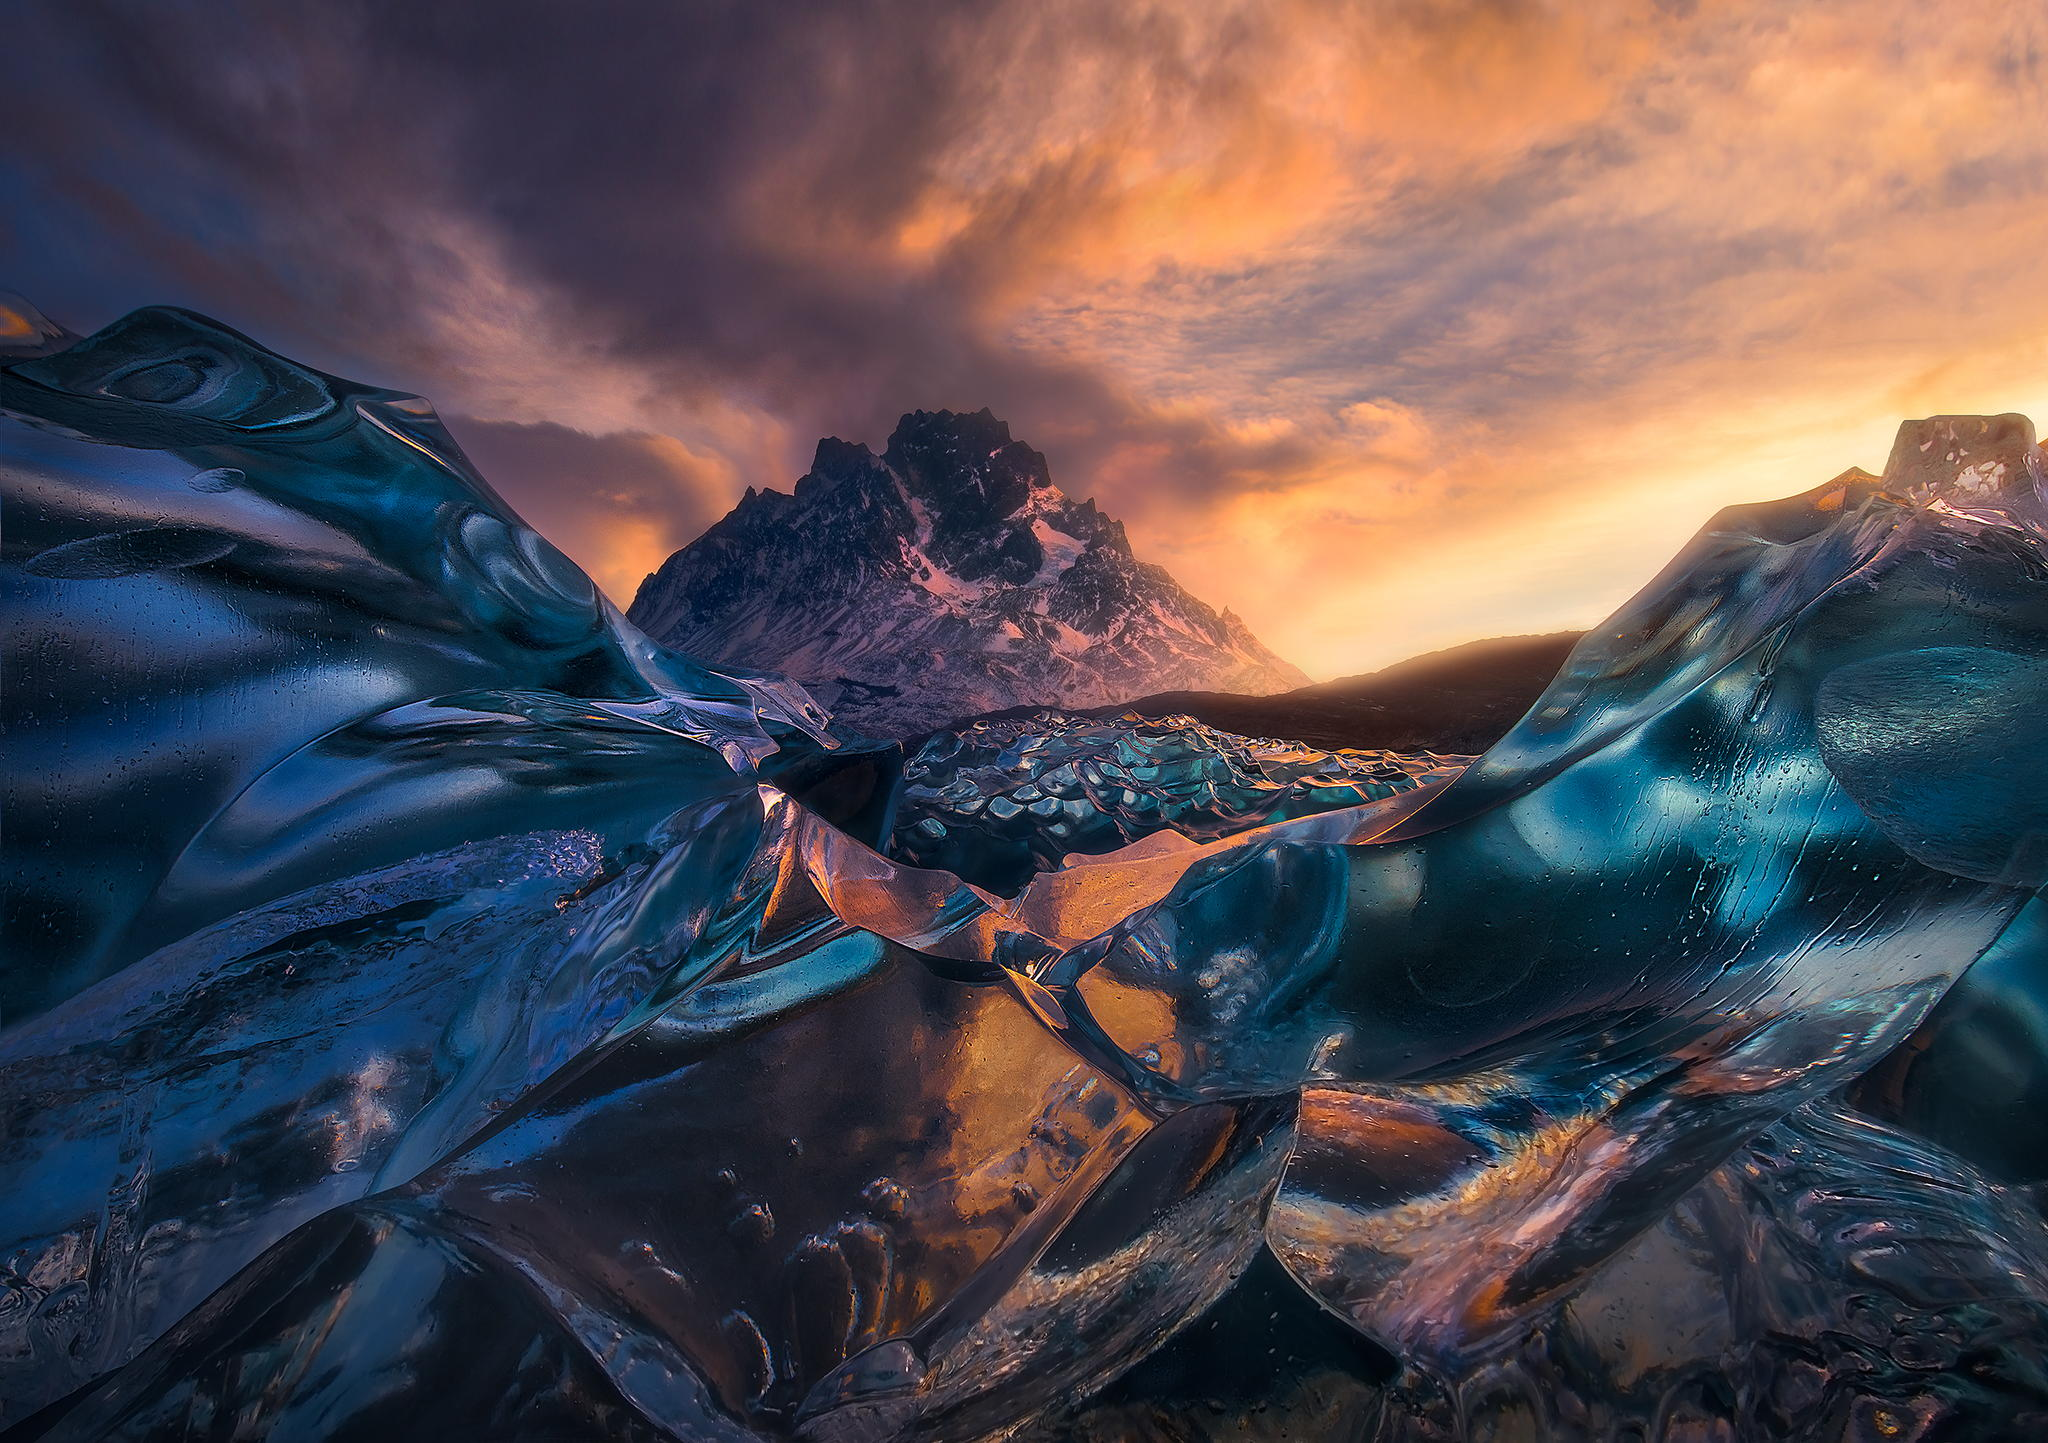 Best of 2014: Top 10 Landscape Photos